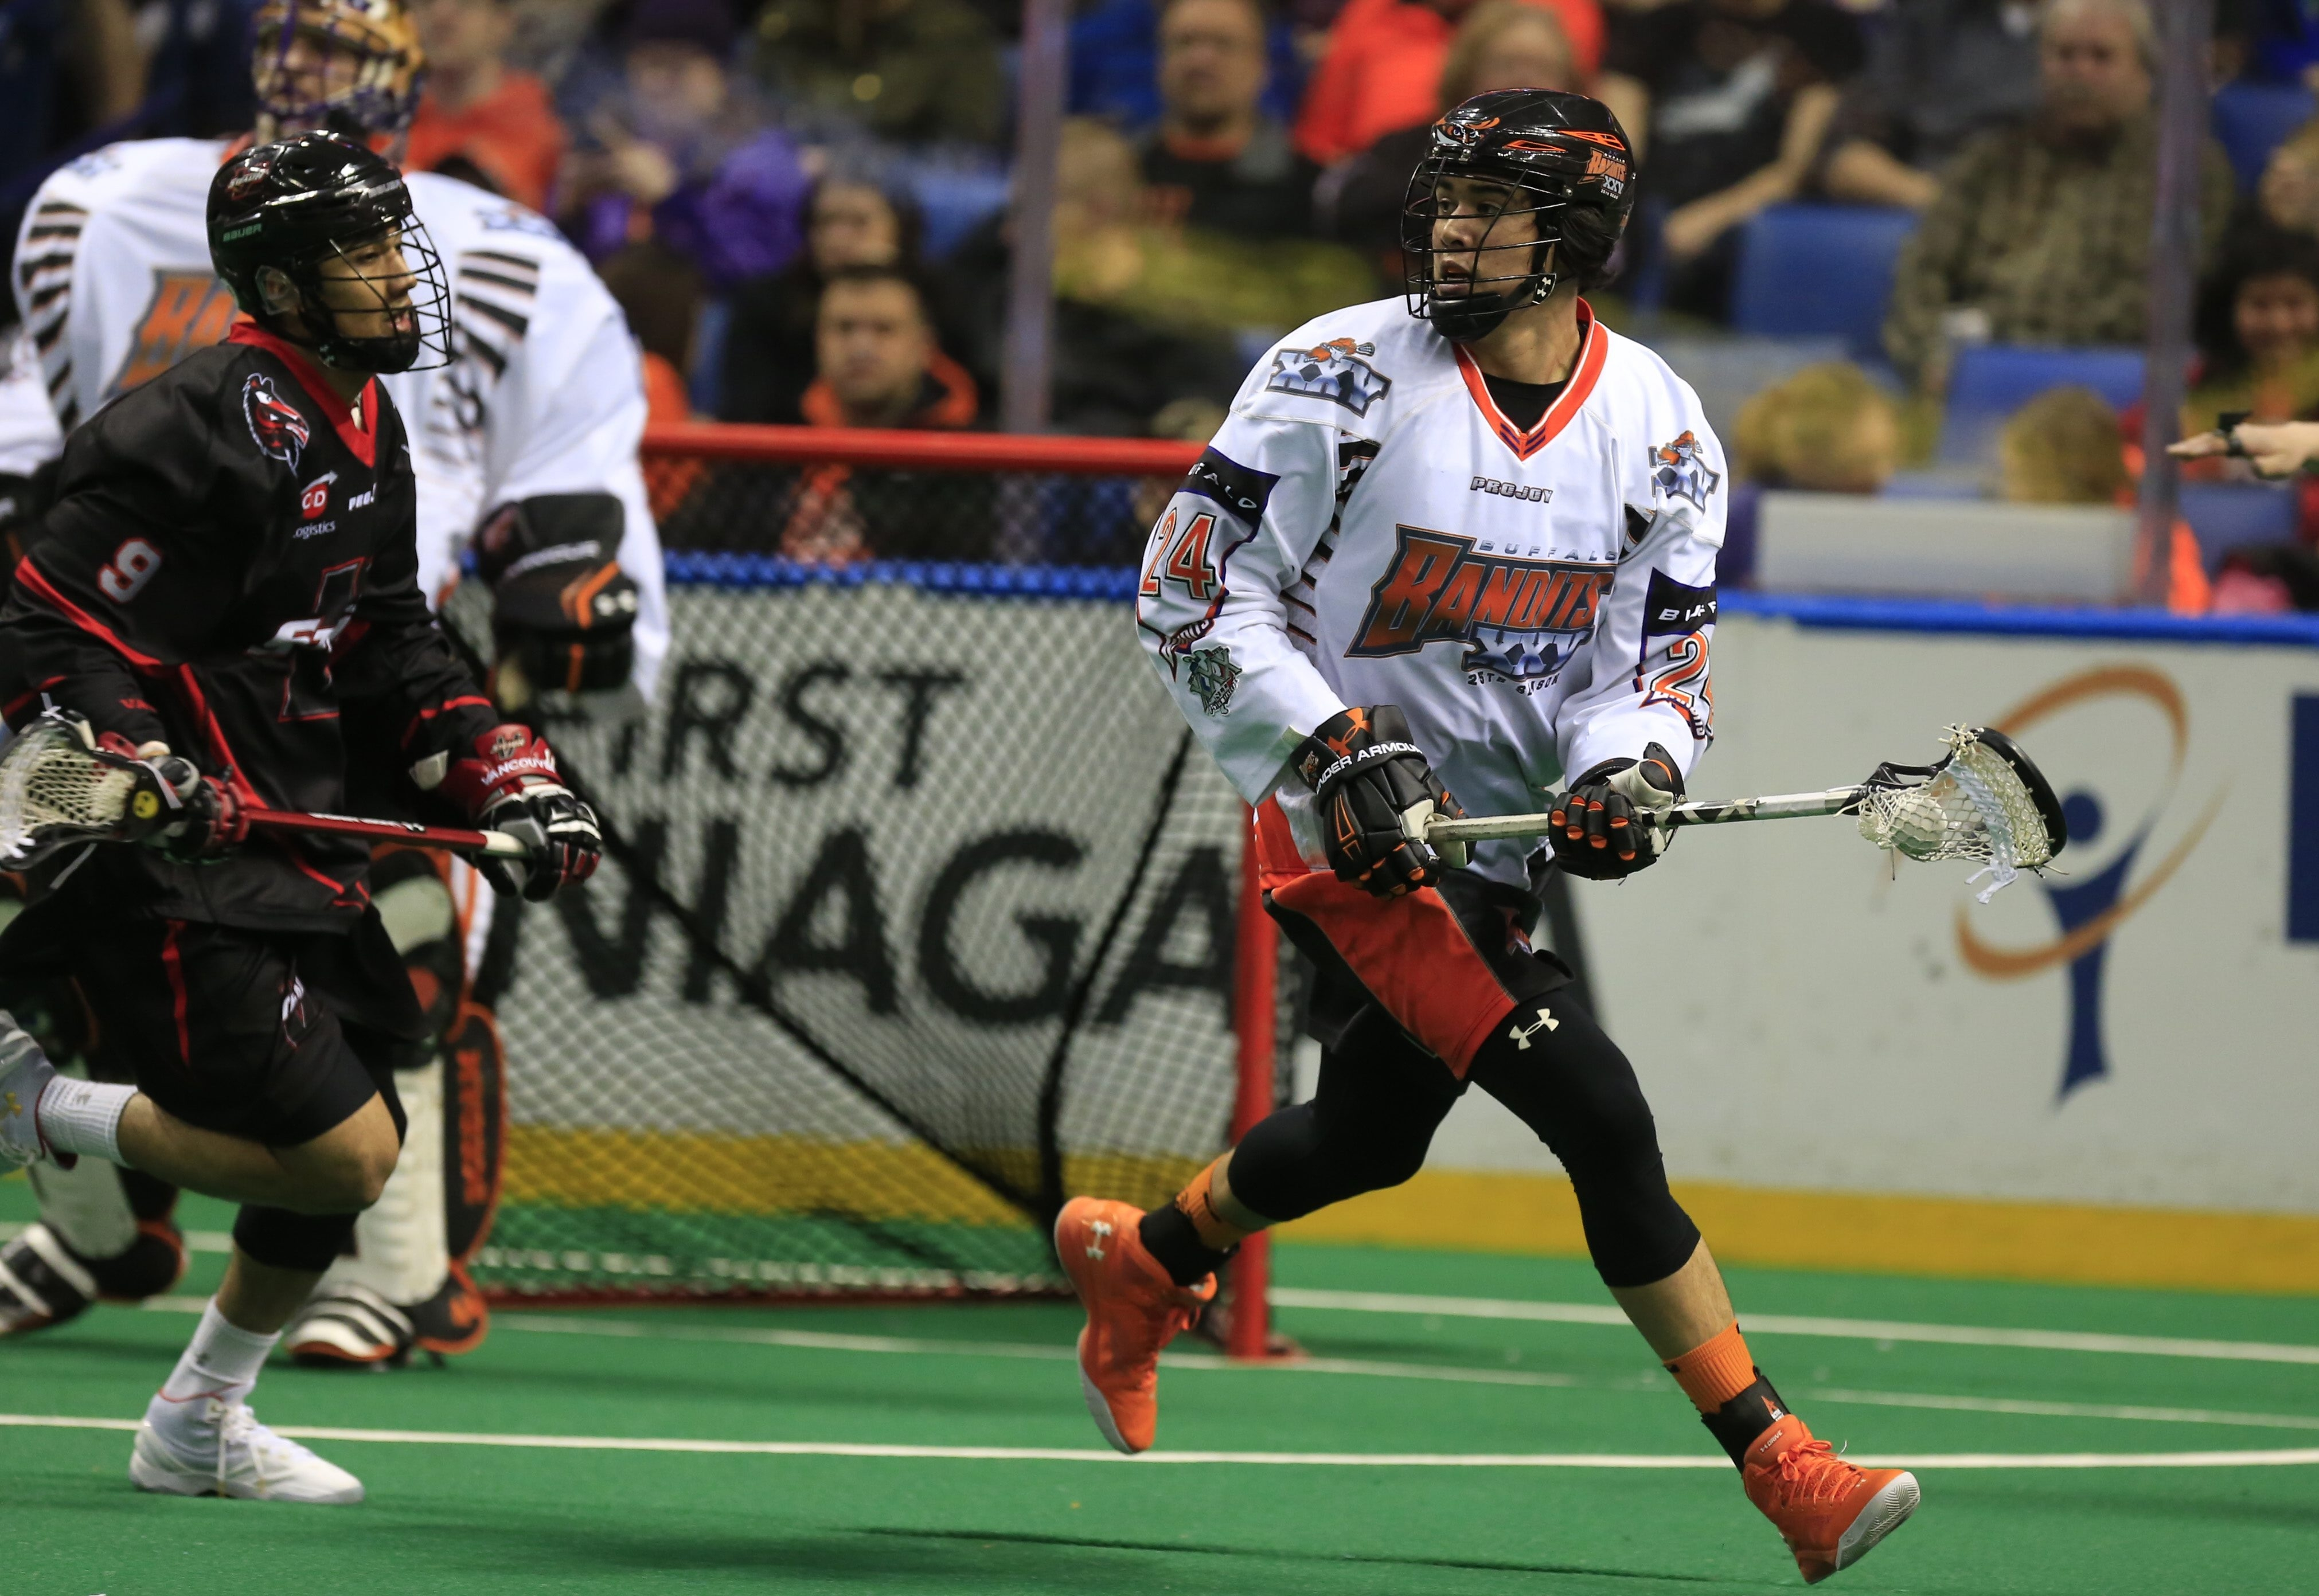 Mitch Jones decided the regular-season meeting between the Bandits and the Rush with an overtime goal.(Harry Scull Jr./Buffalo News)